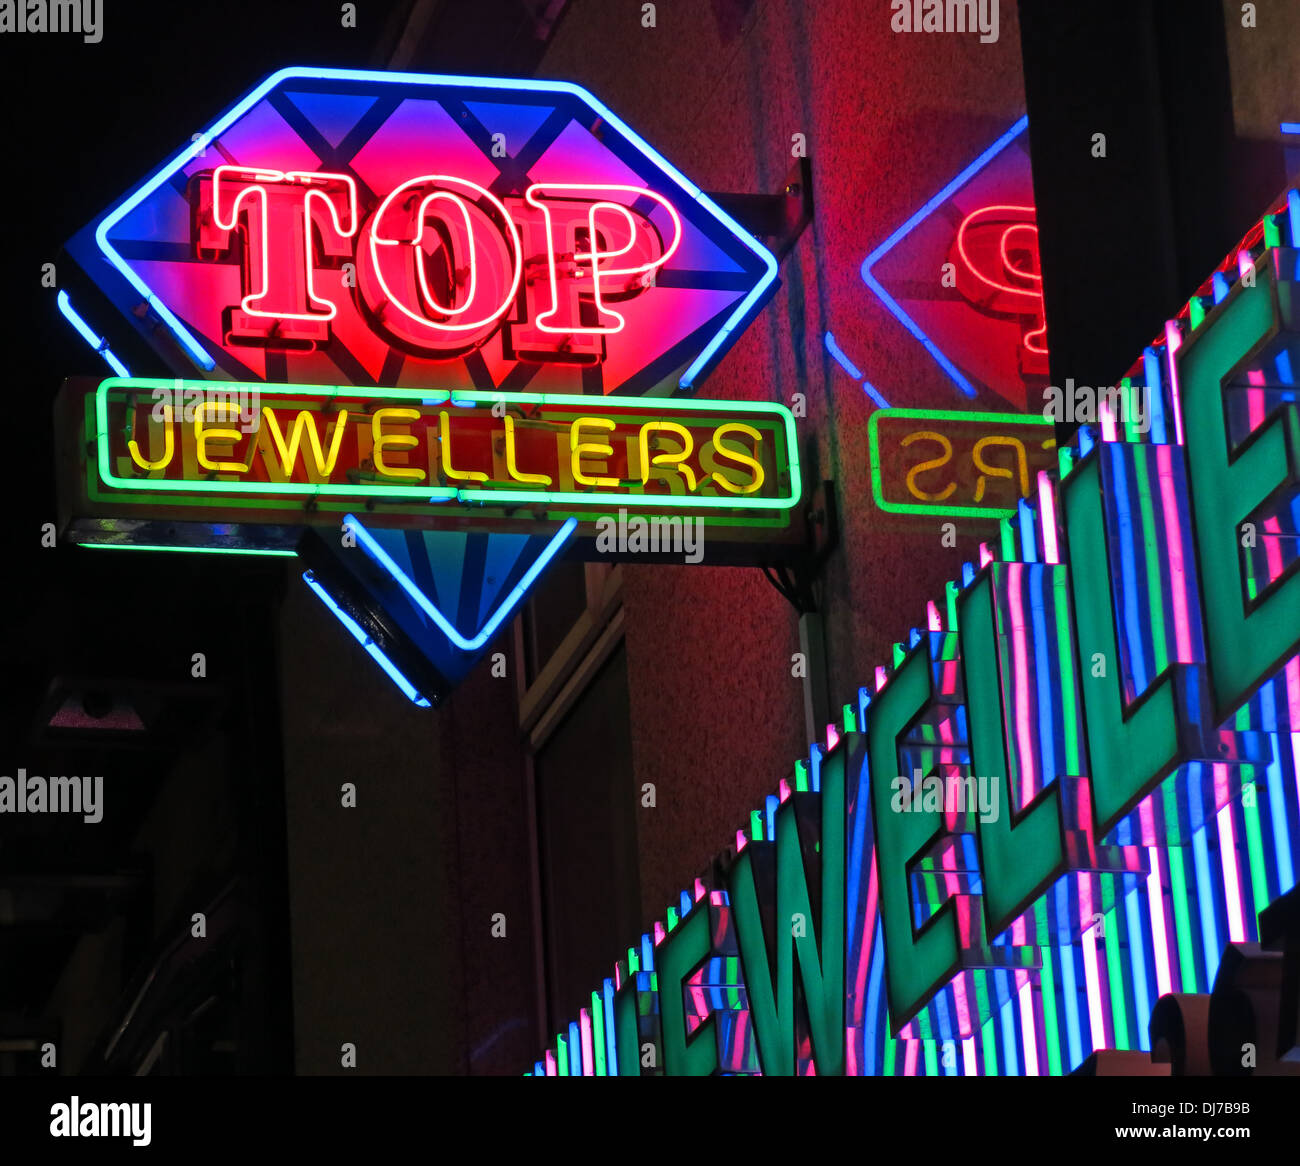 Top Indian Jewelers Rusholme Curry Mile Manchester England UK at night - Stock Image